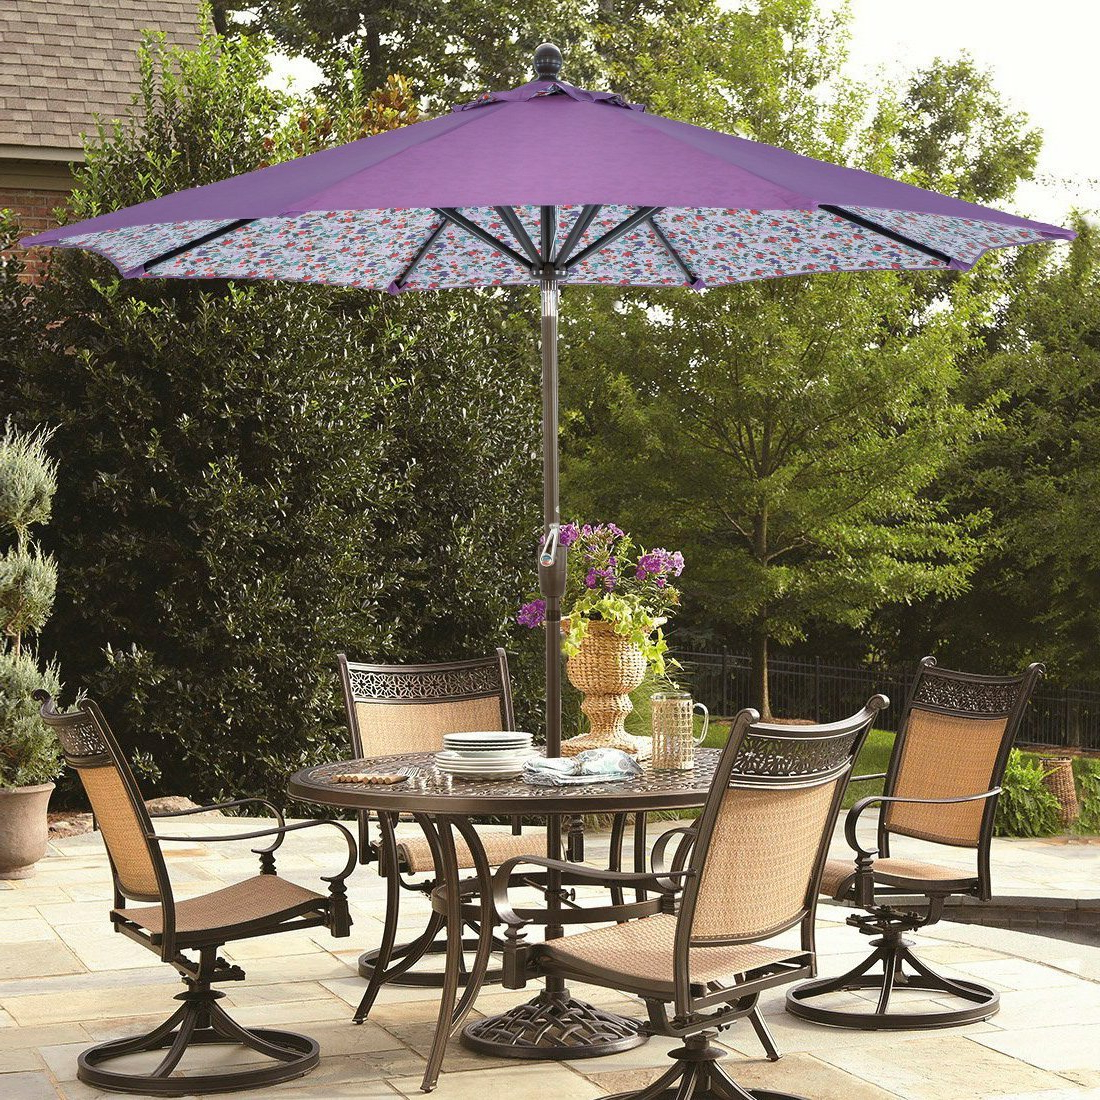 Hutson 9' Market Umbrella Intended For Most Popular Hawkinge Market Umbrellas (View 9 of 20)